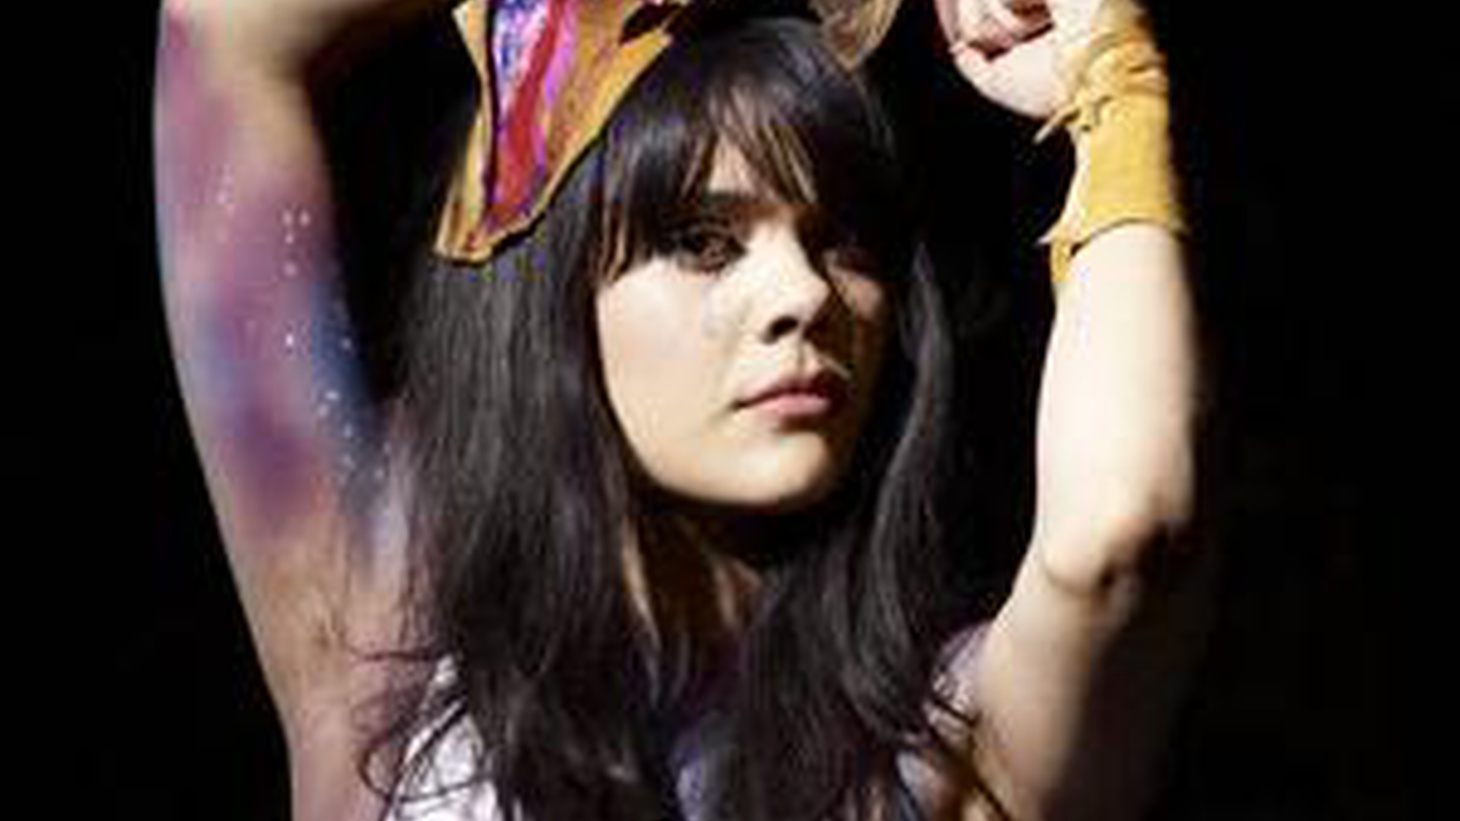 ...from Two Suns. 